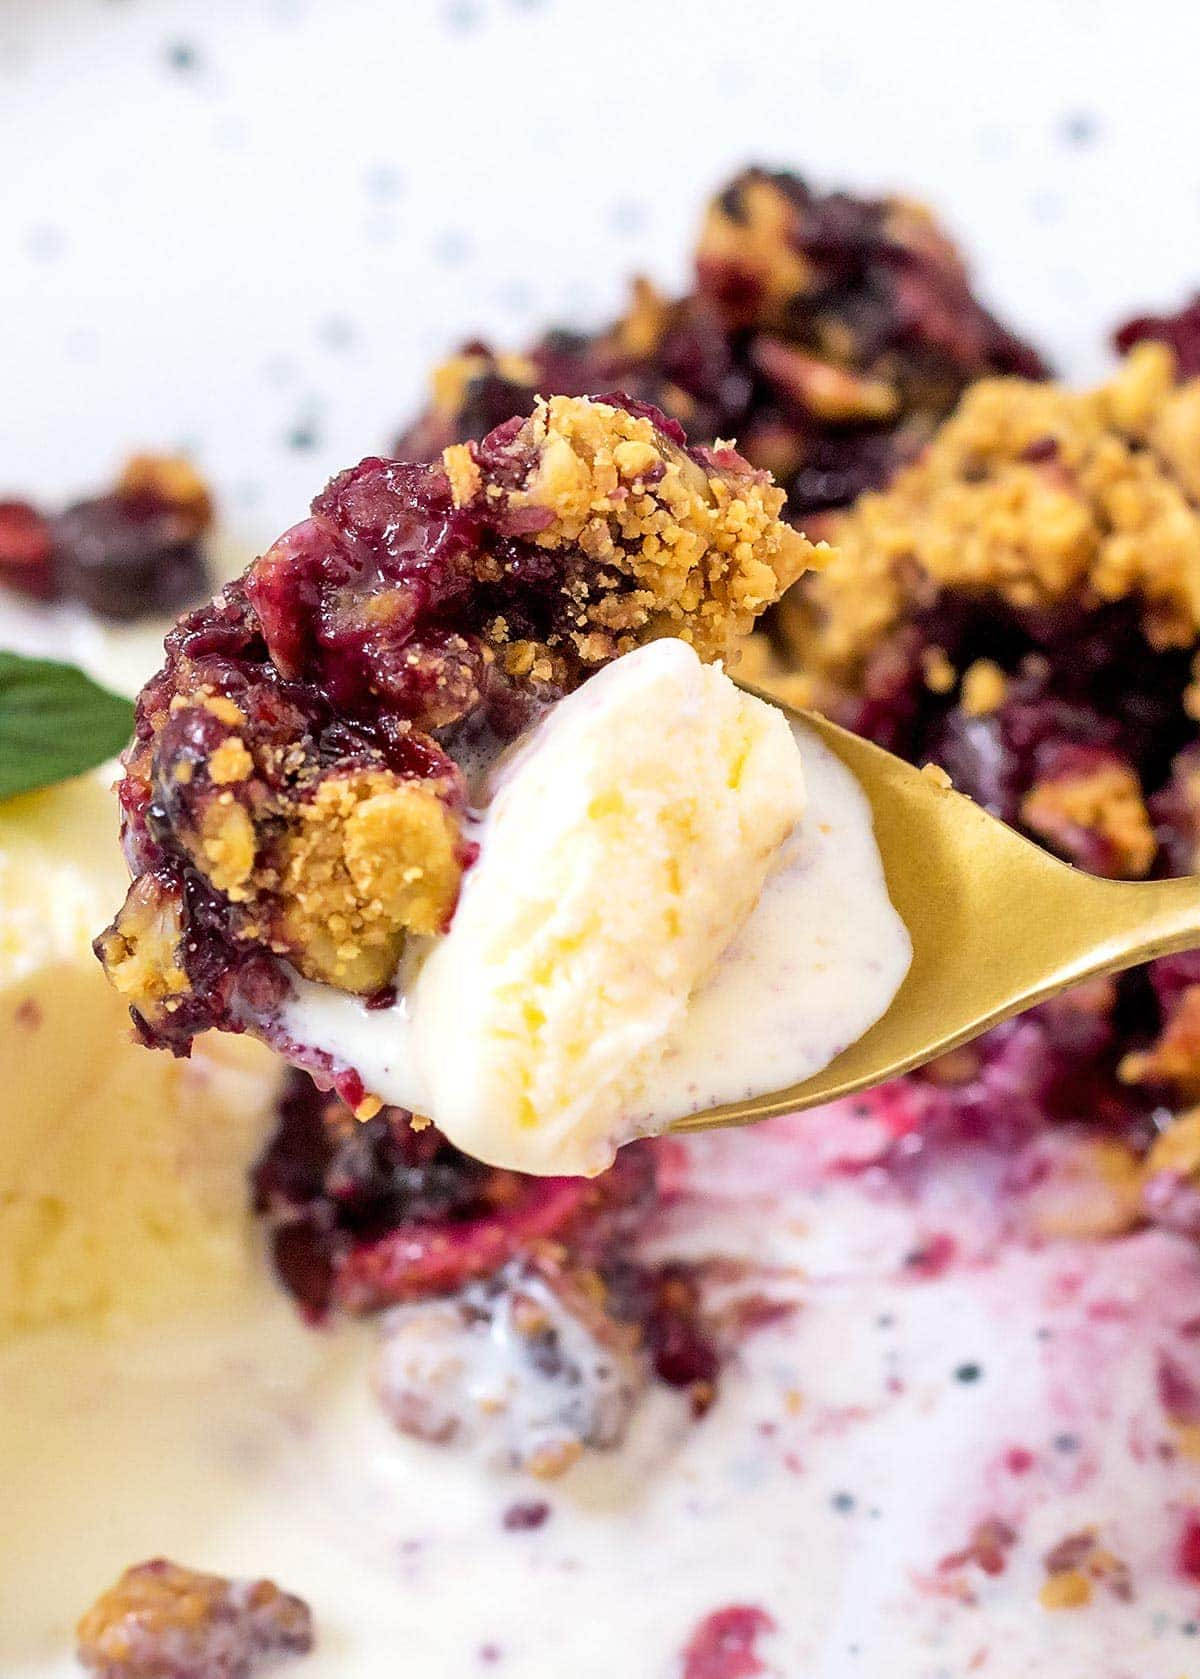 Spoonful of Berry Crumble and Ice Cream